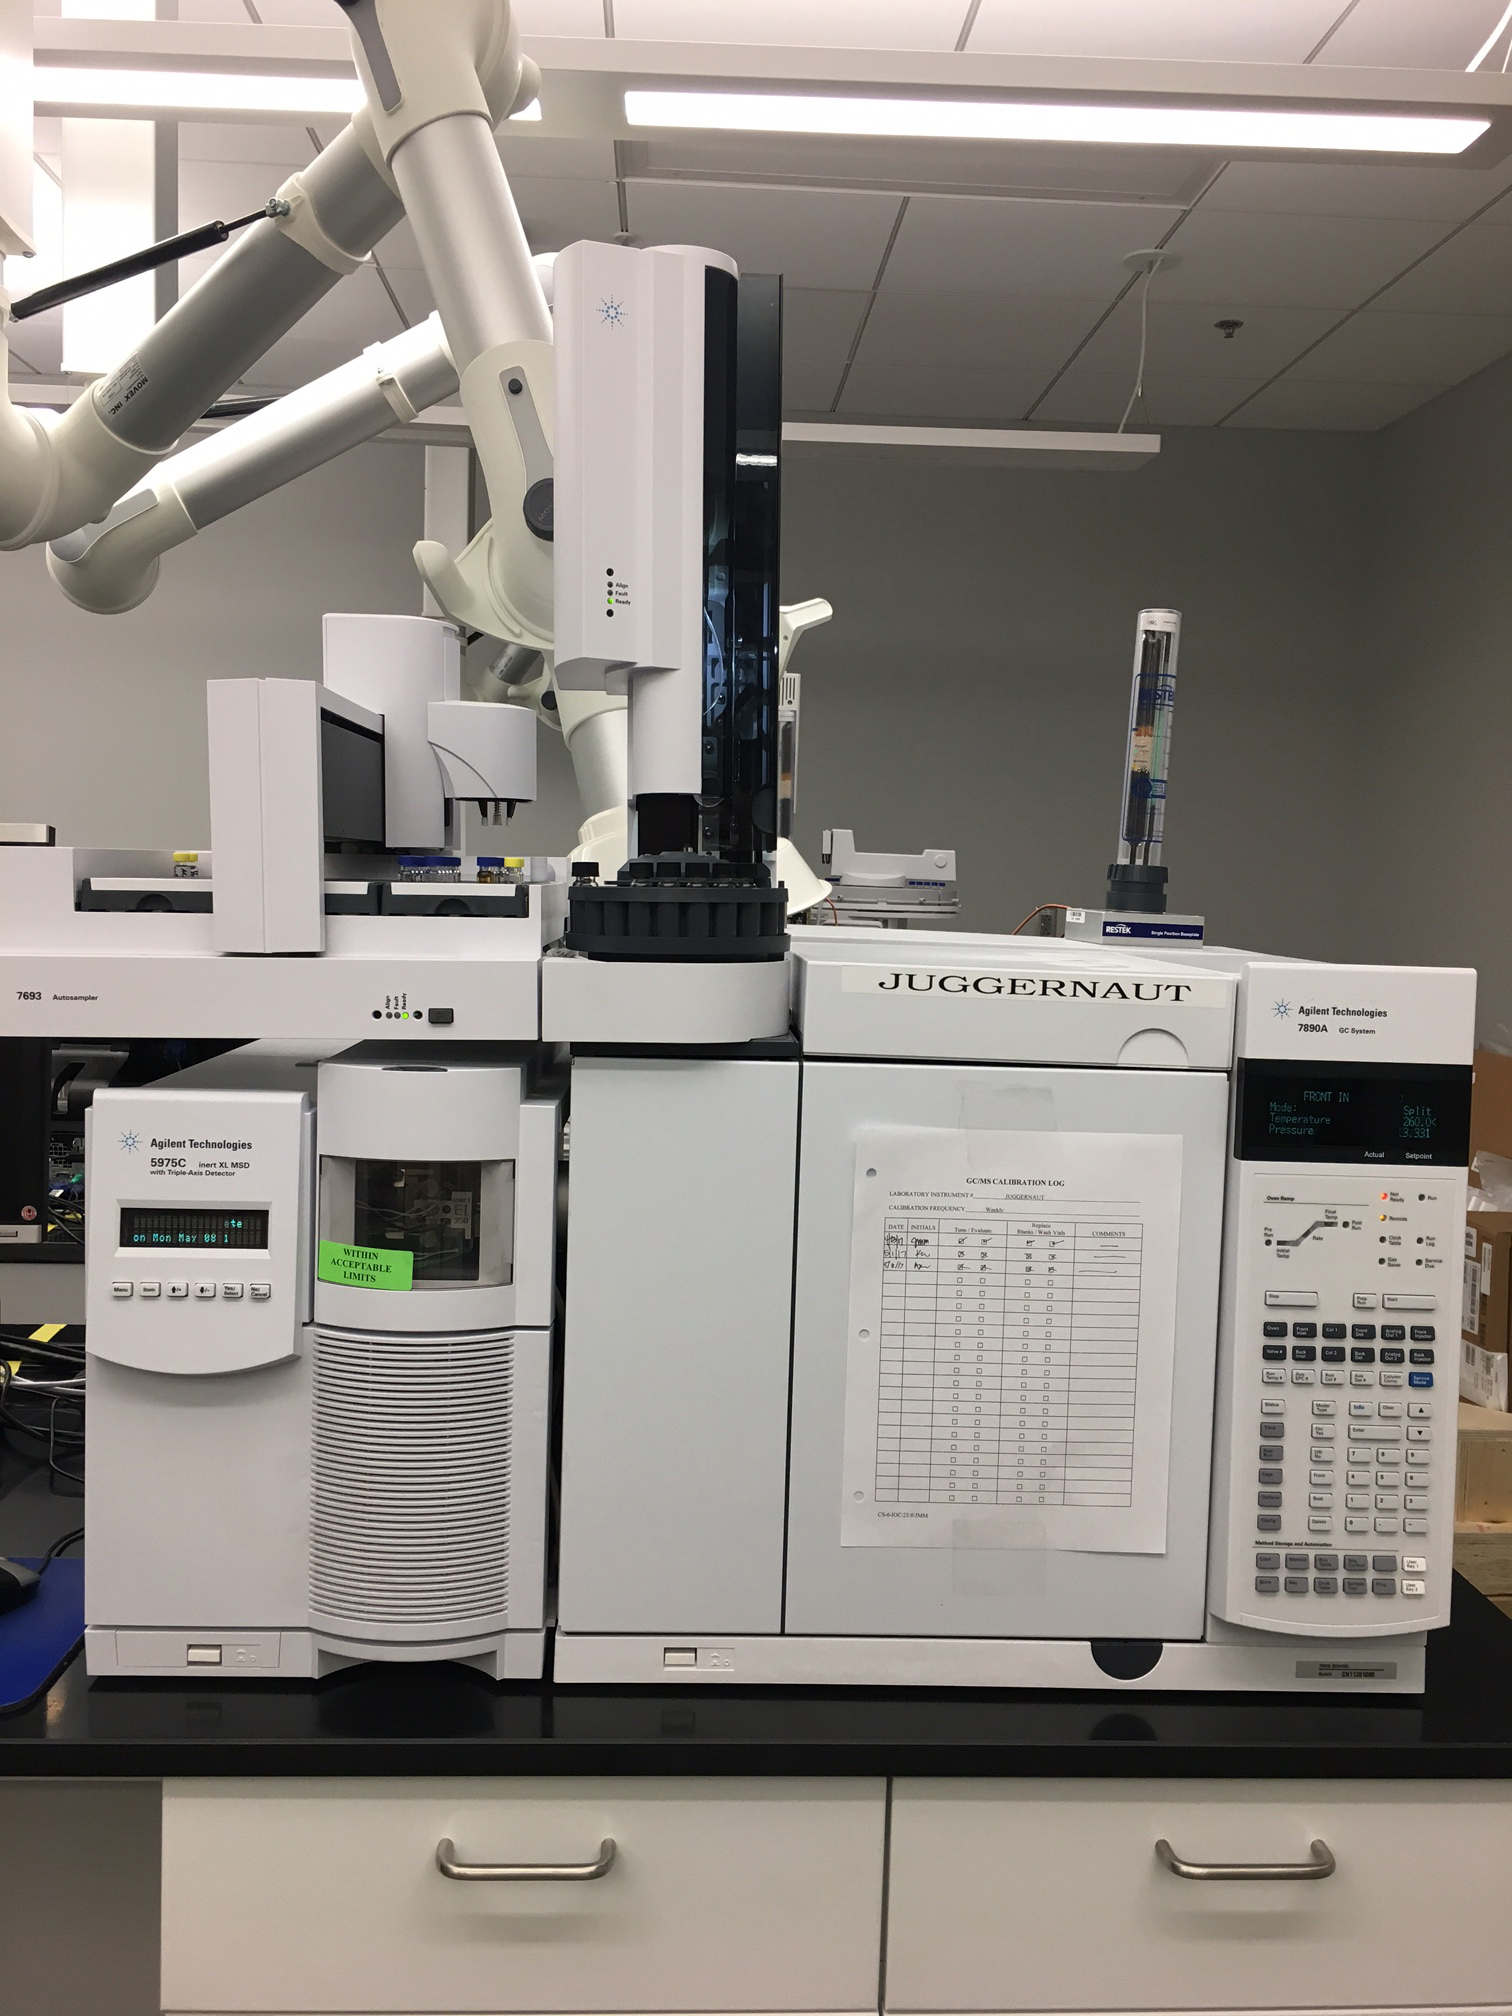 gas chromatograph / mass spectrometer